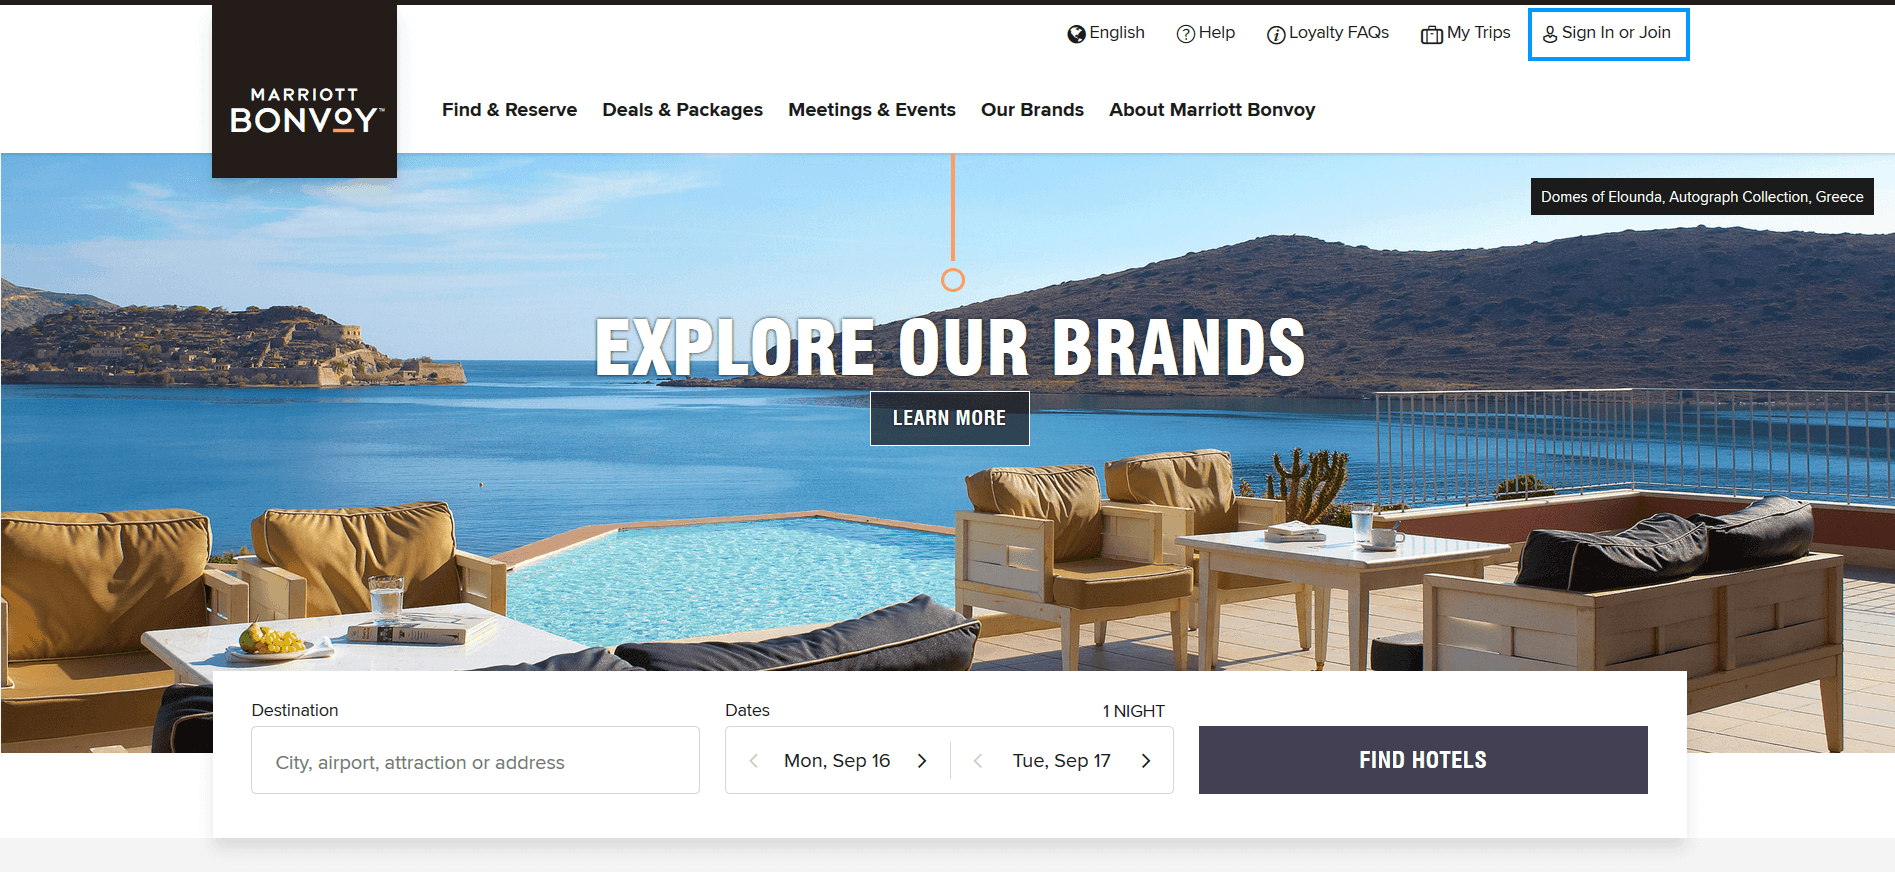 How To Find Off-Peak And Peak Dates For Marriott Hotels